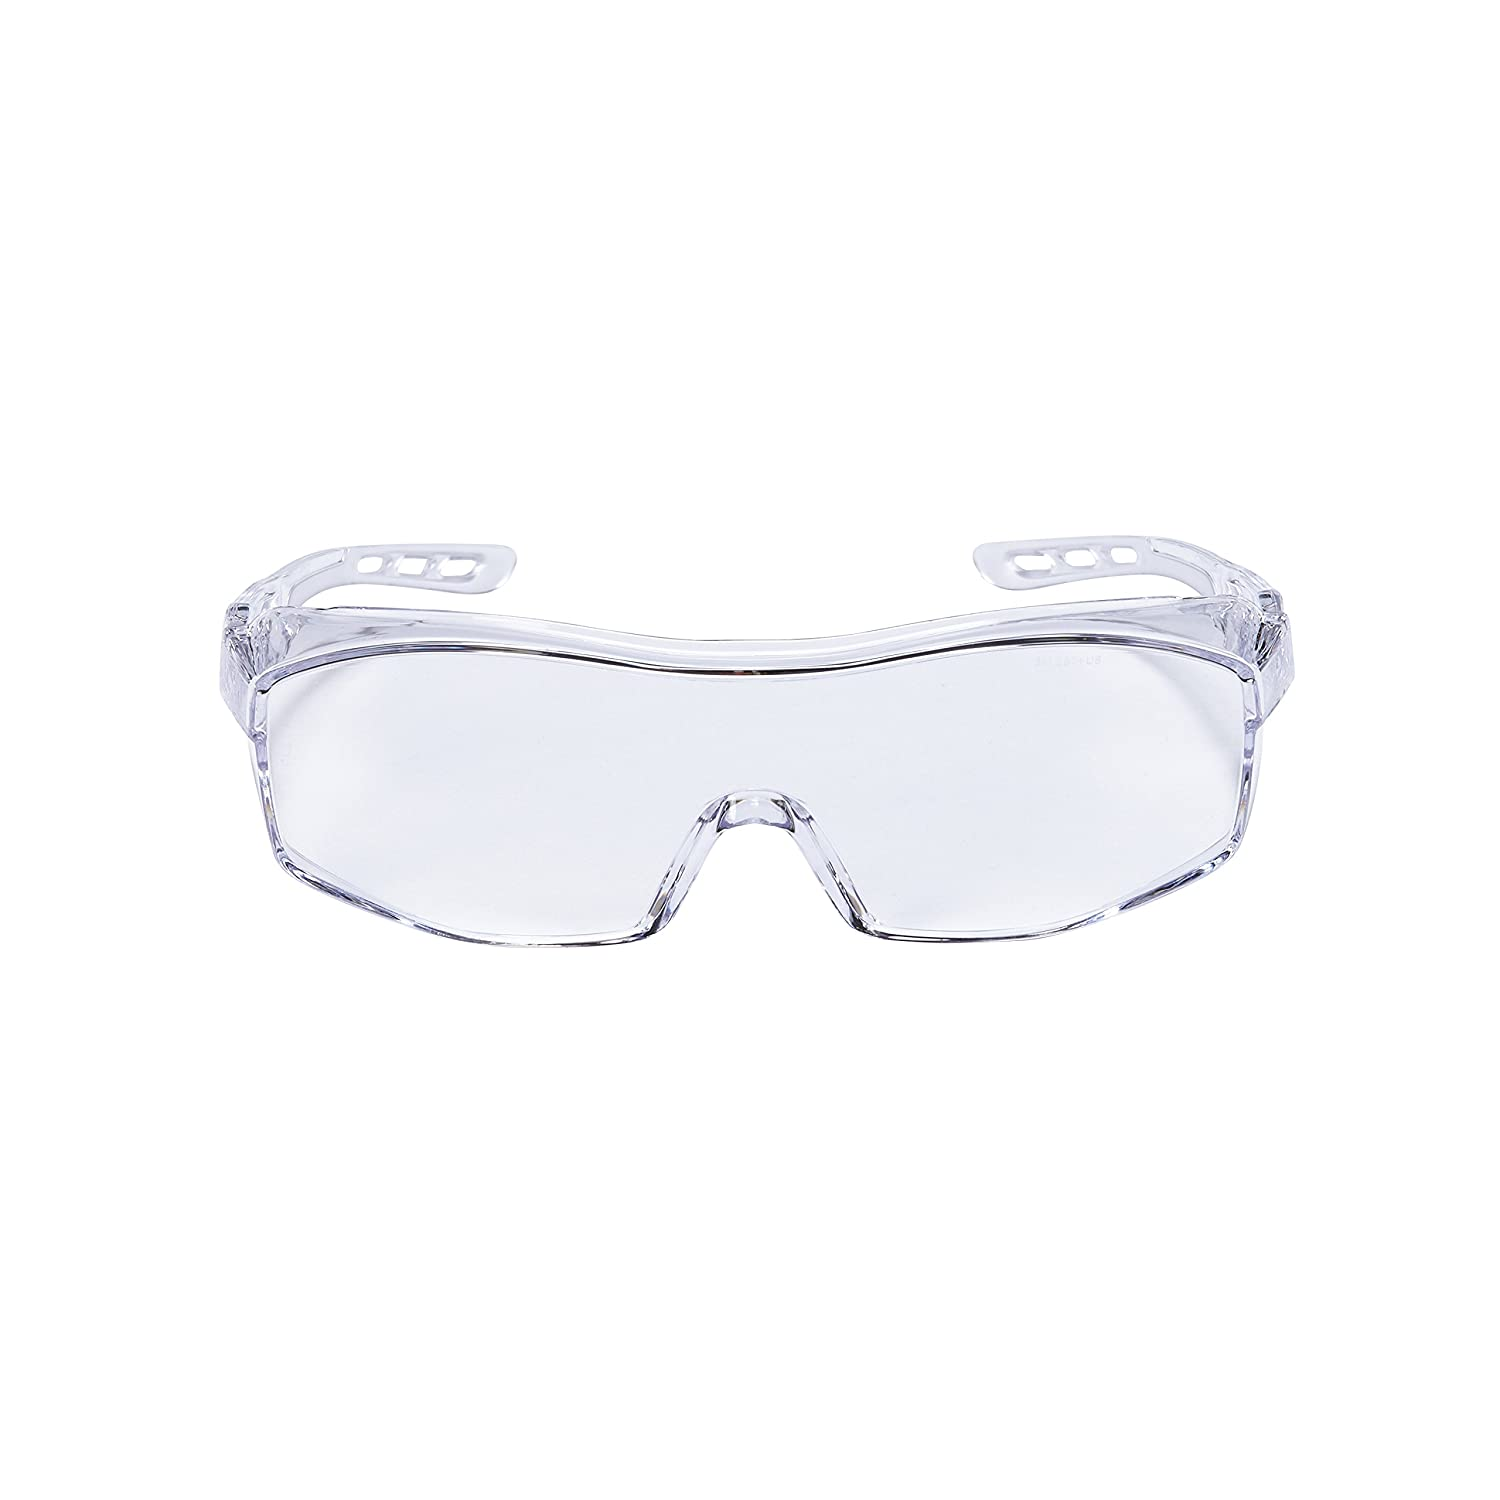 3M Peltor 47030-PEL-6 Sport Over The Glass Safety Eyewear (1 Pack), Clear